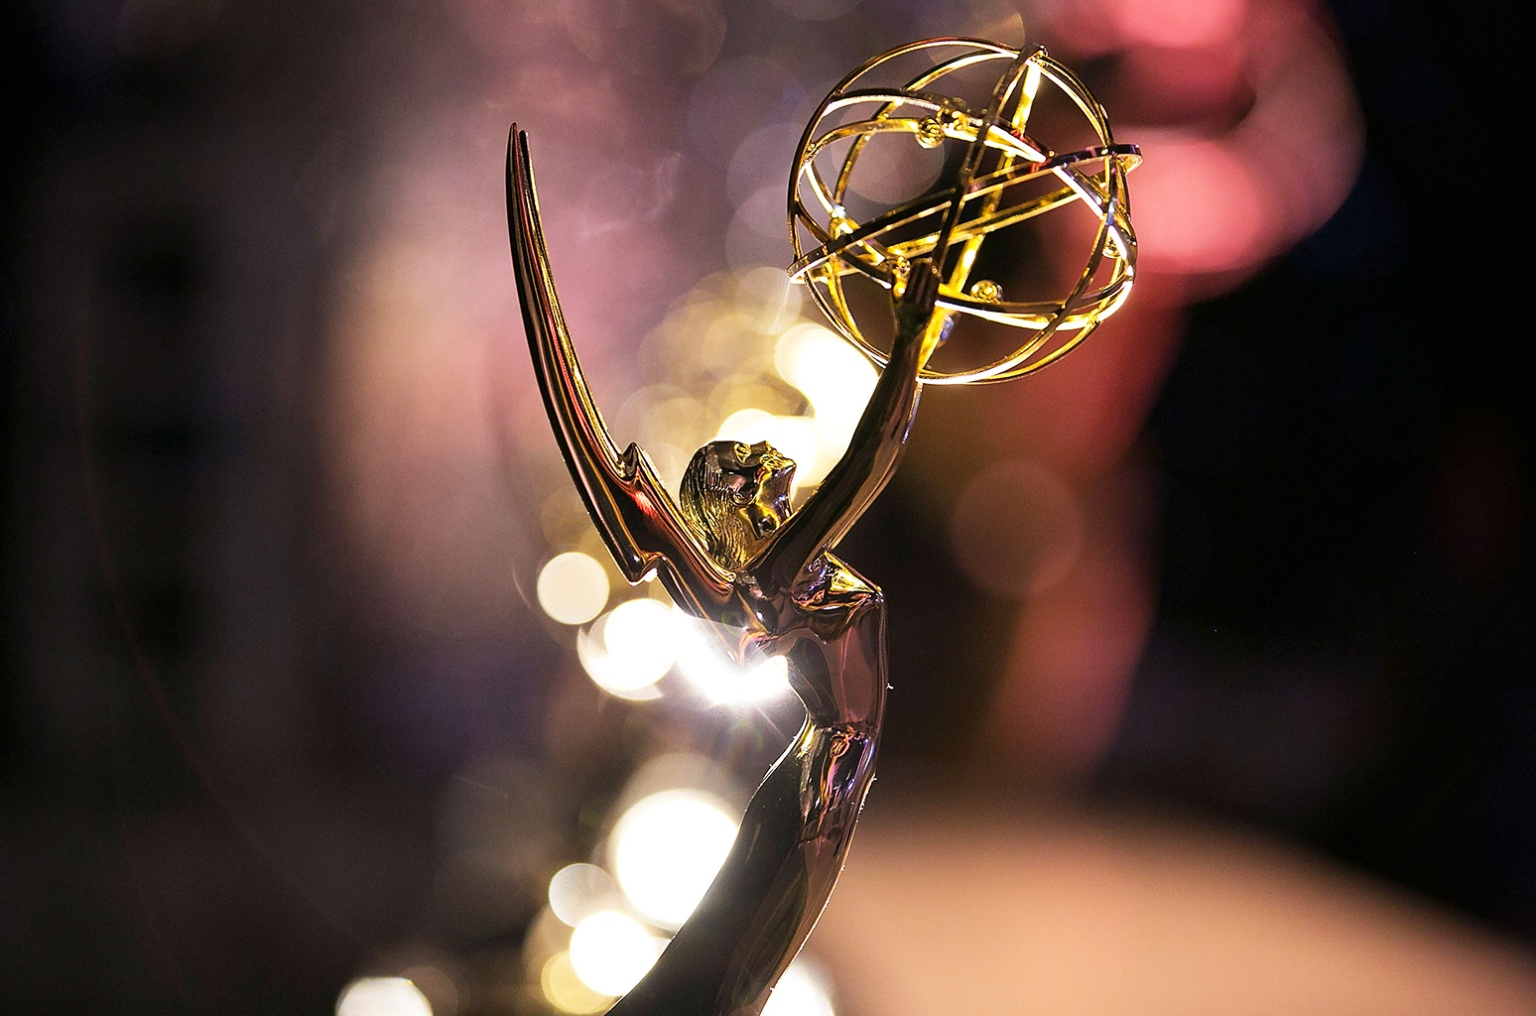 Entravision Palm Springs Wins Two Regional Emmy Awards, Golden Mic For Best Newscast